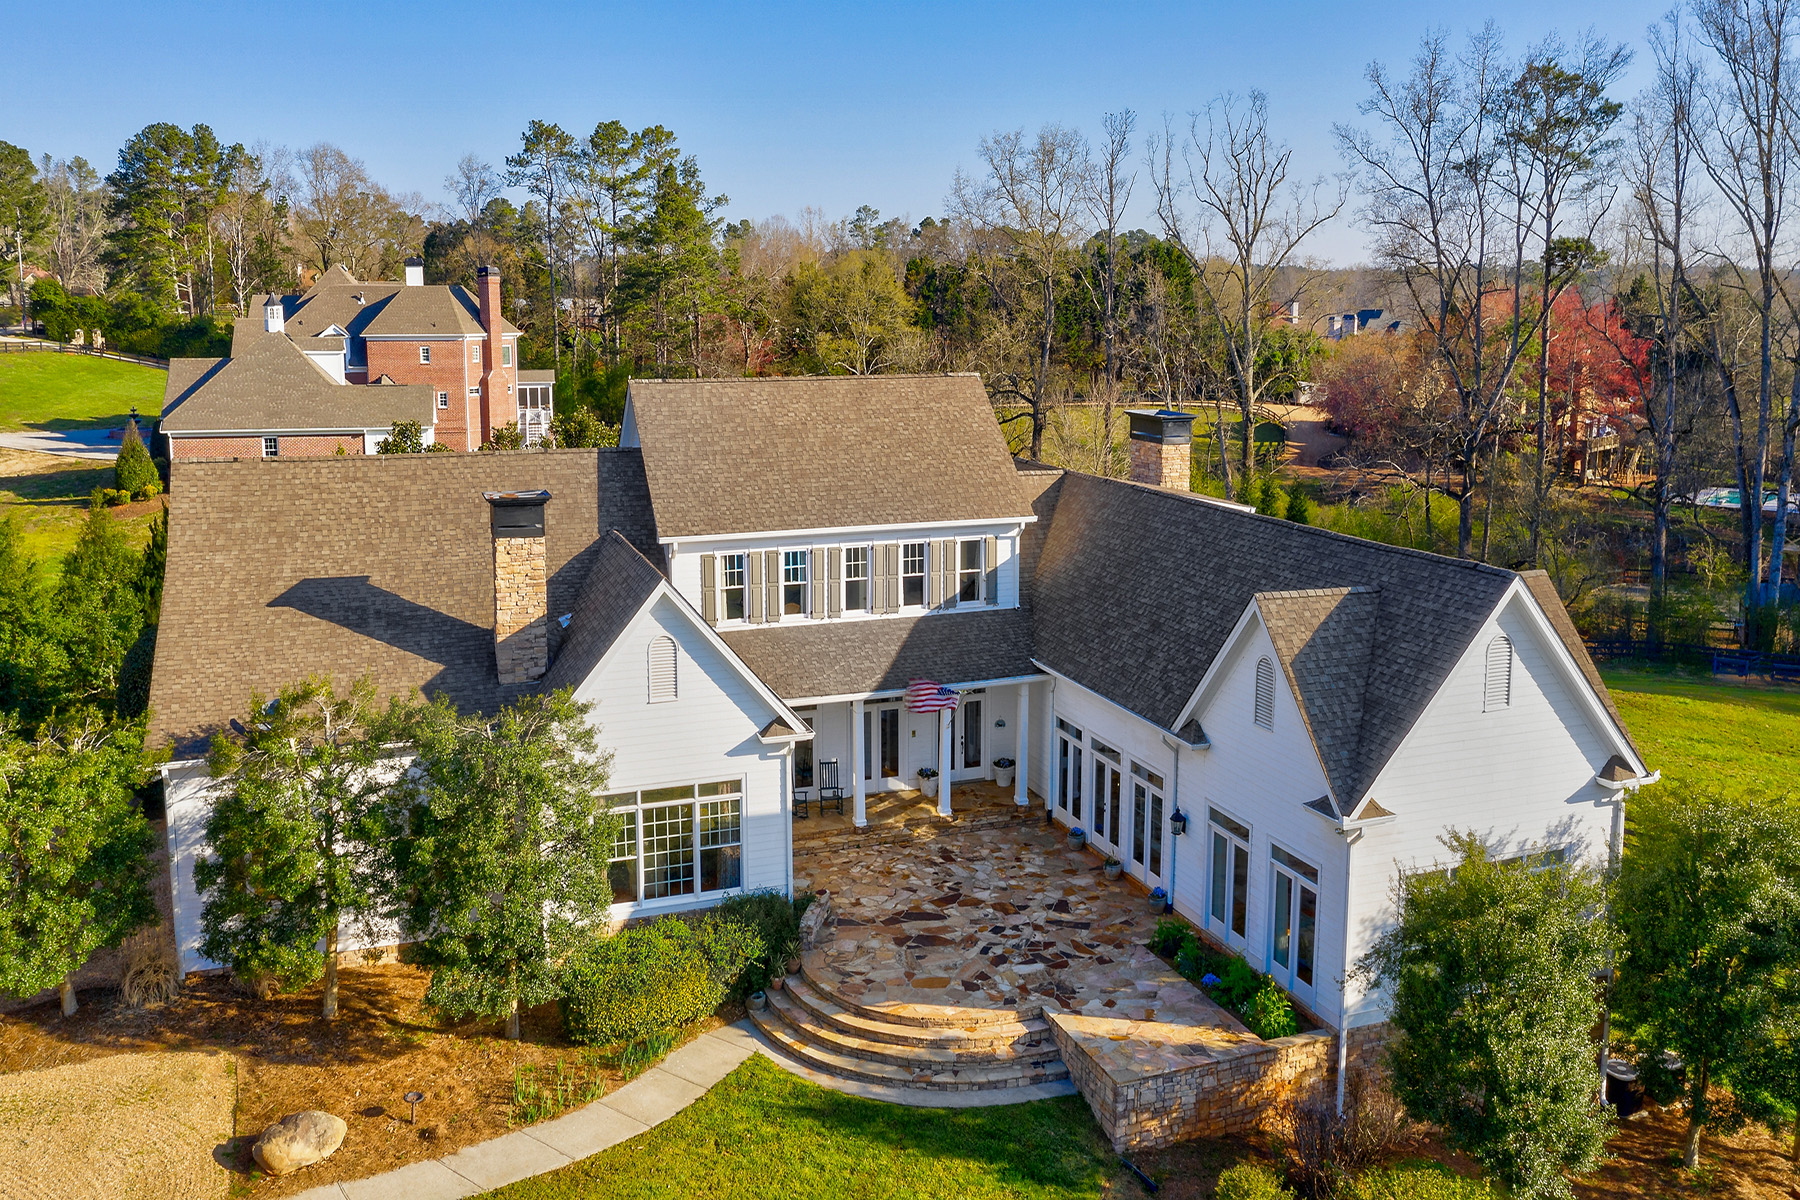 Single Family Homes for Sale at Exceptional Equestrian Property On Coveted Wood Road 14735 Wood Road, Milton, Georgia 30004 United States